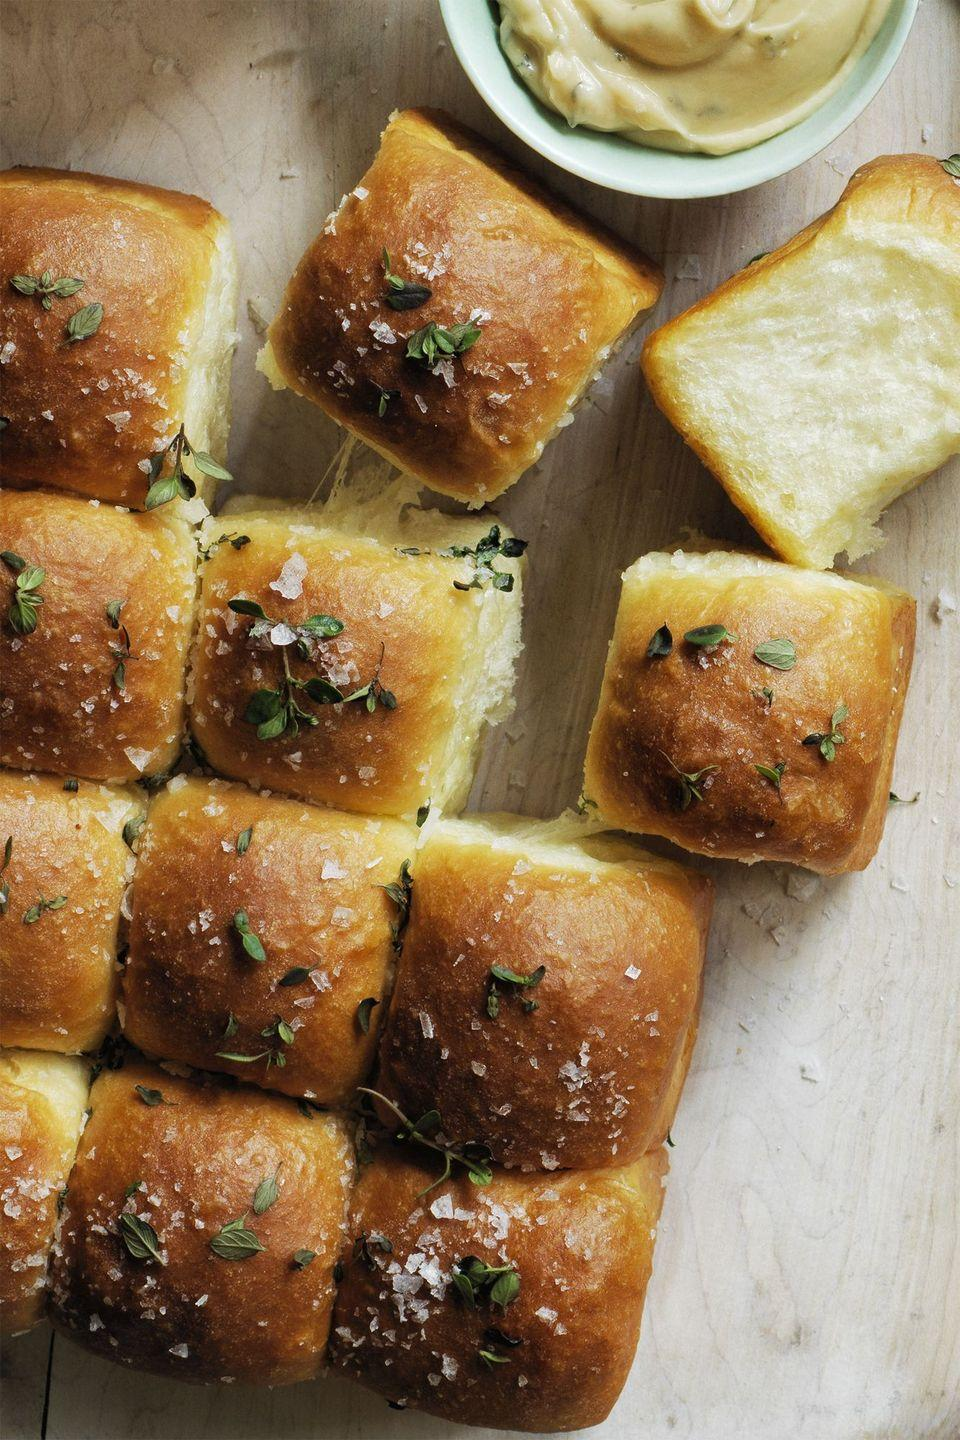 """<p>Because no meal is complete without rolls (and lots of butter).</p><p><em><strong><a href=""""https://www.womansday.com/food-recipes/food-drinks/recipes/a60501/sweet-parker-house-rolls-recipe/"""" rel=""""nofollow noopener"""" target=""""_blank"""" data-ylk=""""slk:Get the Sweet Parker House Rolls recipe."""" class=""""link rapid-noclick-resp"""">Get the Sweet Parker House Rolls recipe.</a></strong></em></p>"""